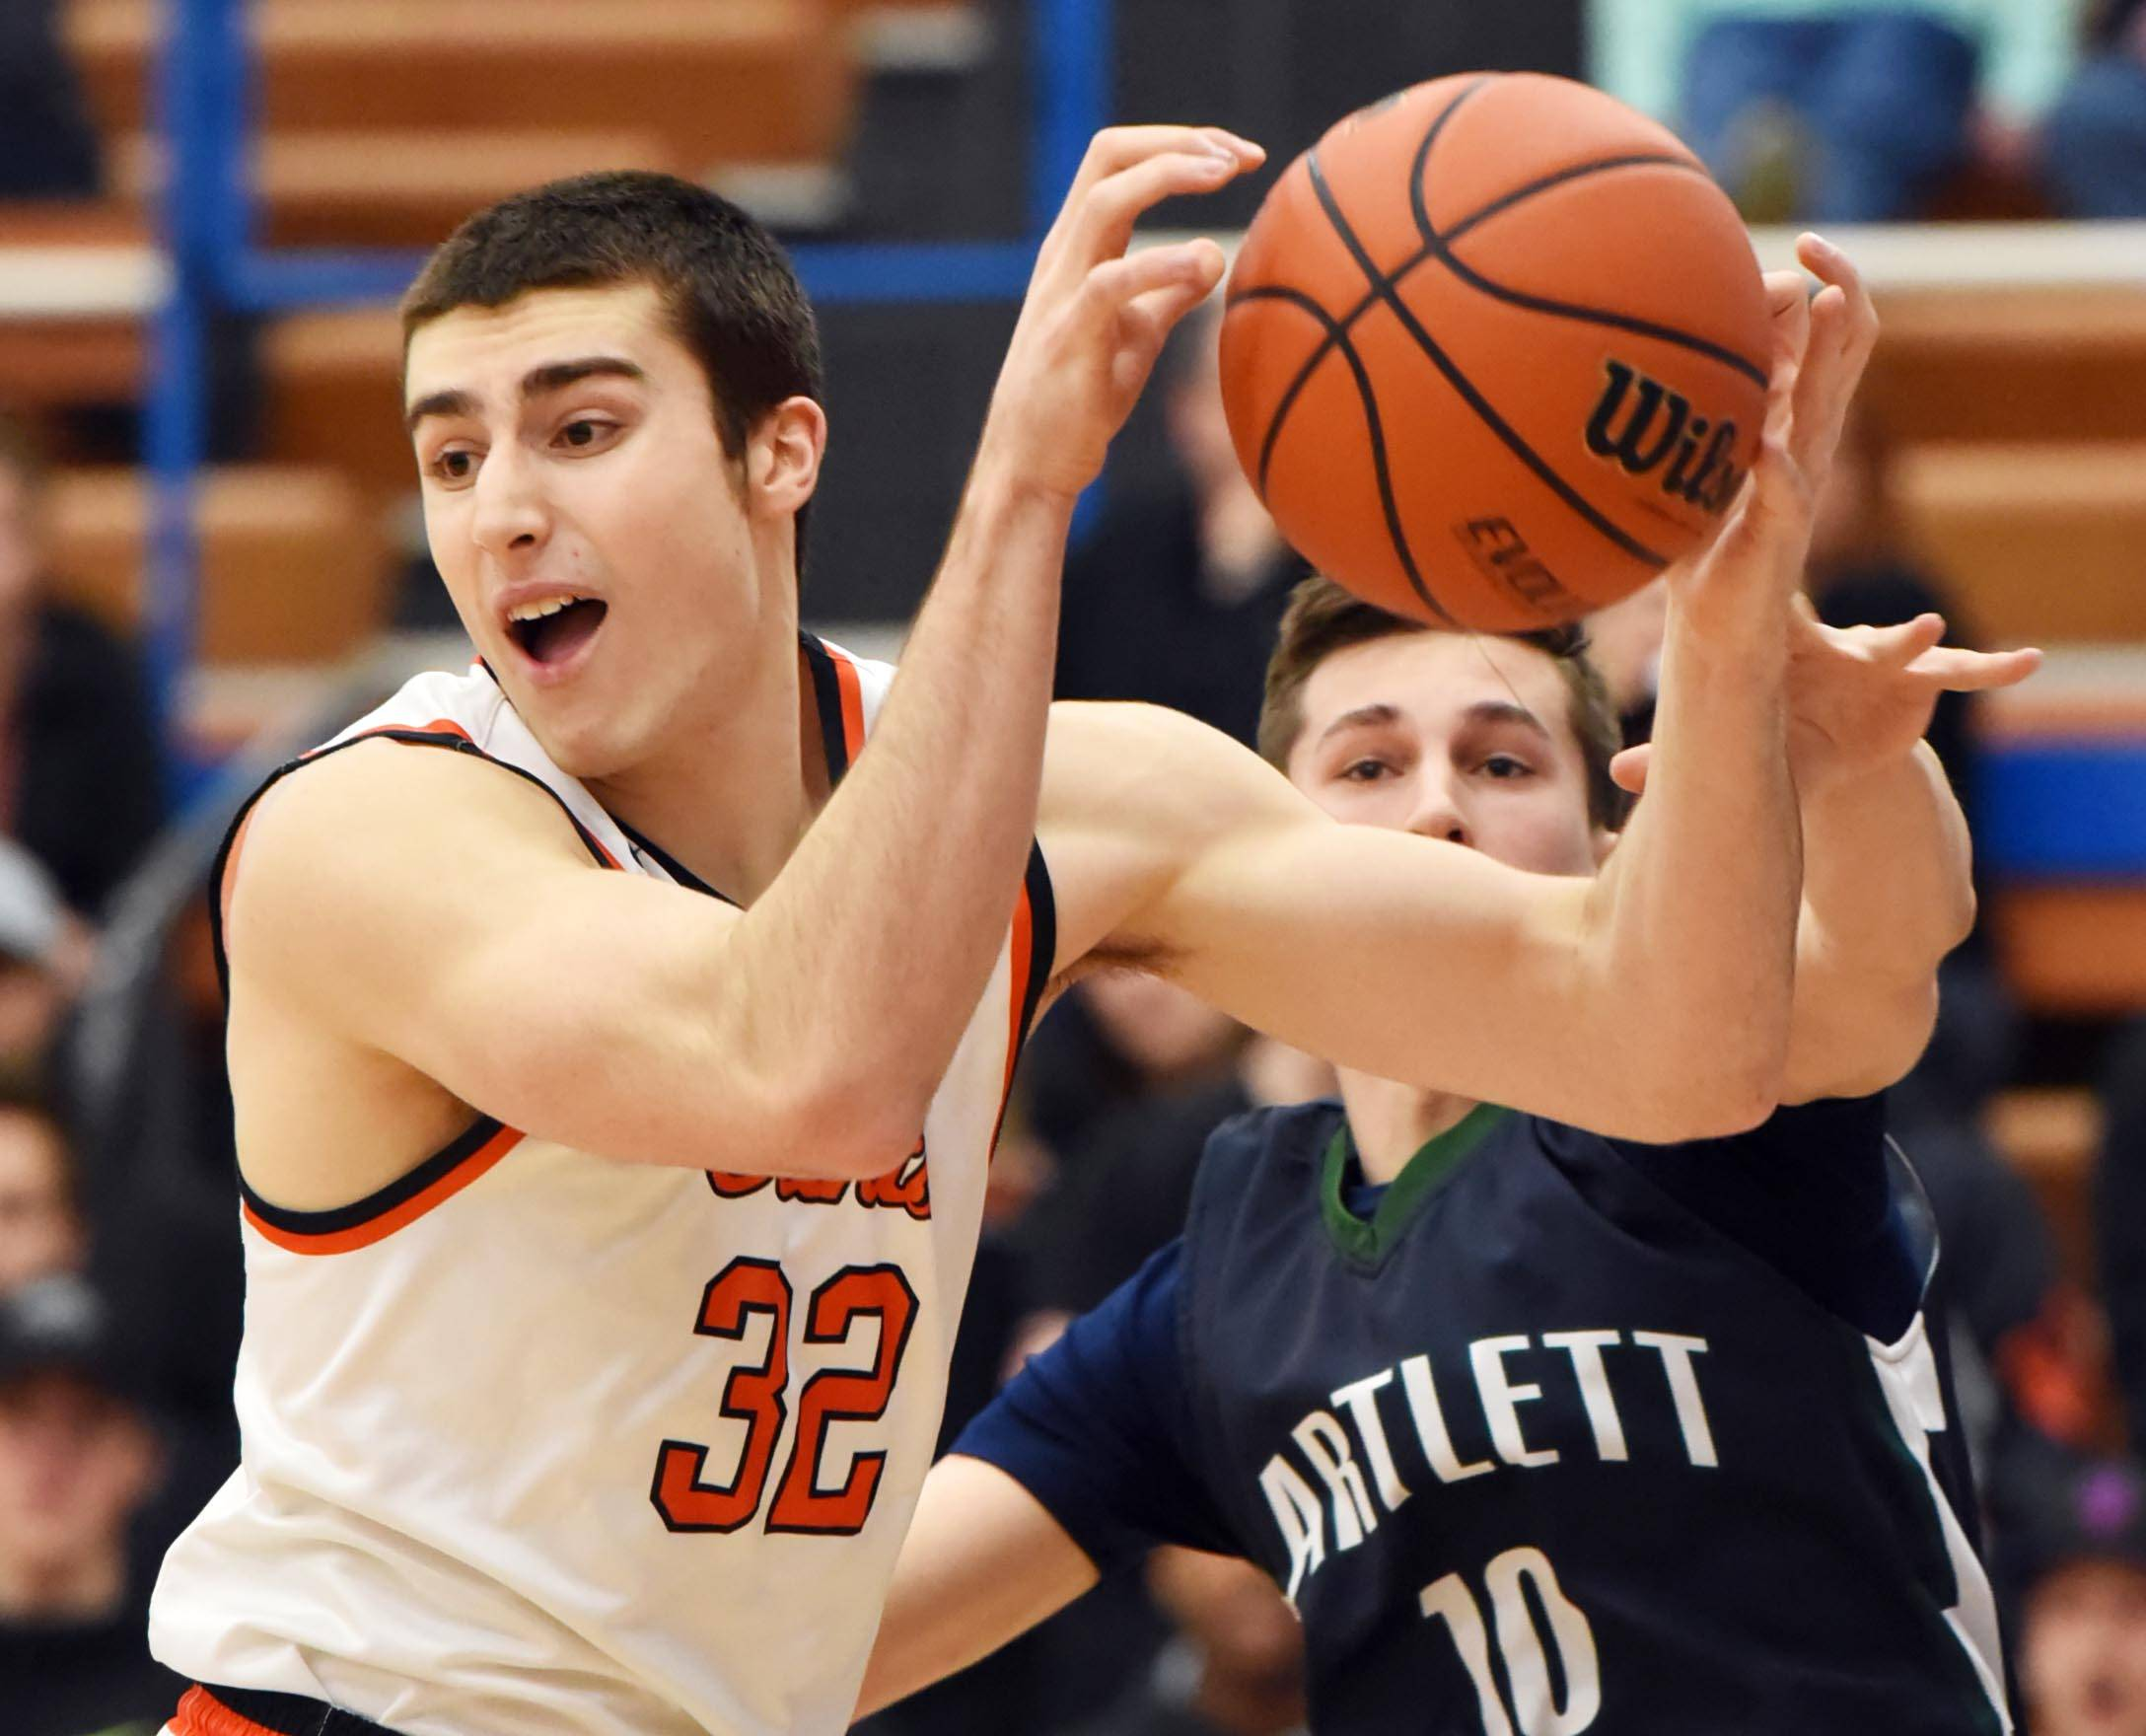 St. Charles East's Justin Hardy loses his grip on the ball as Bartlett's TomasVikonis reaches for it Wednesday at the boys basketball regional tournament game in Elgin.